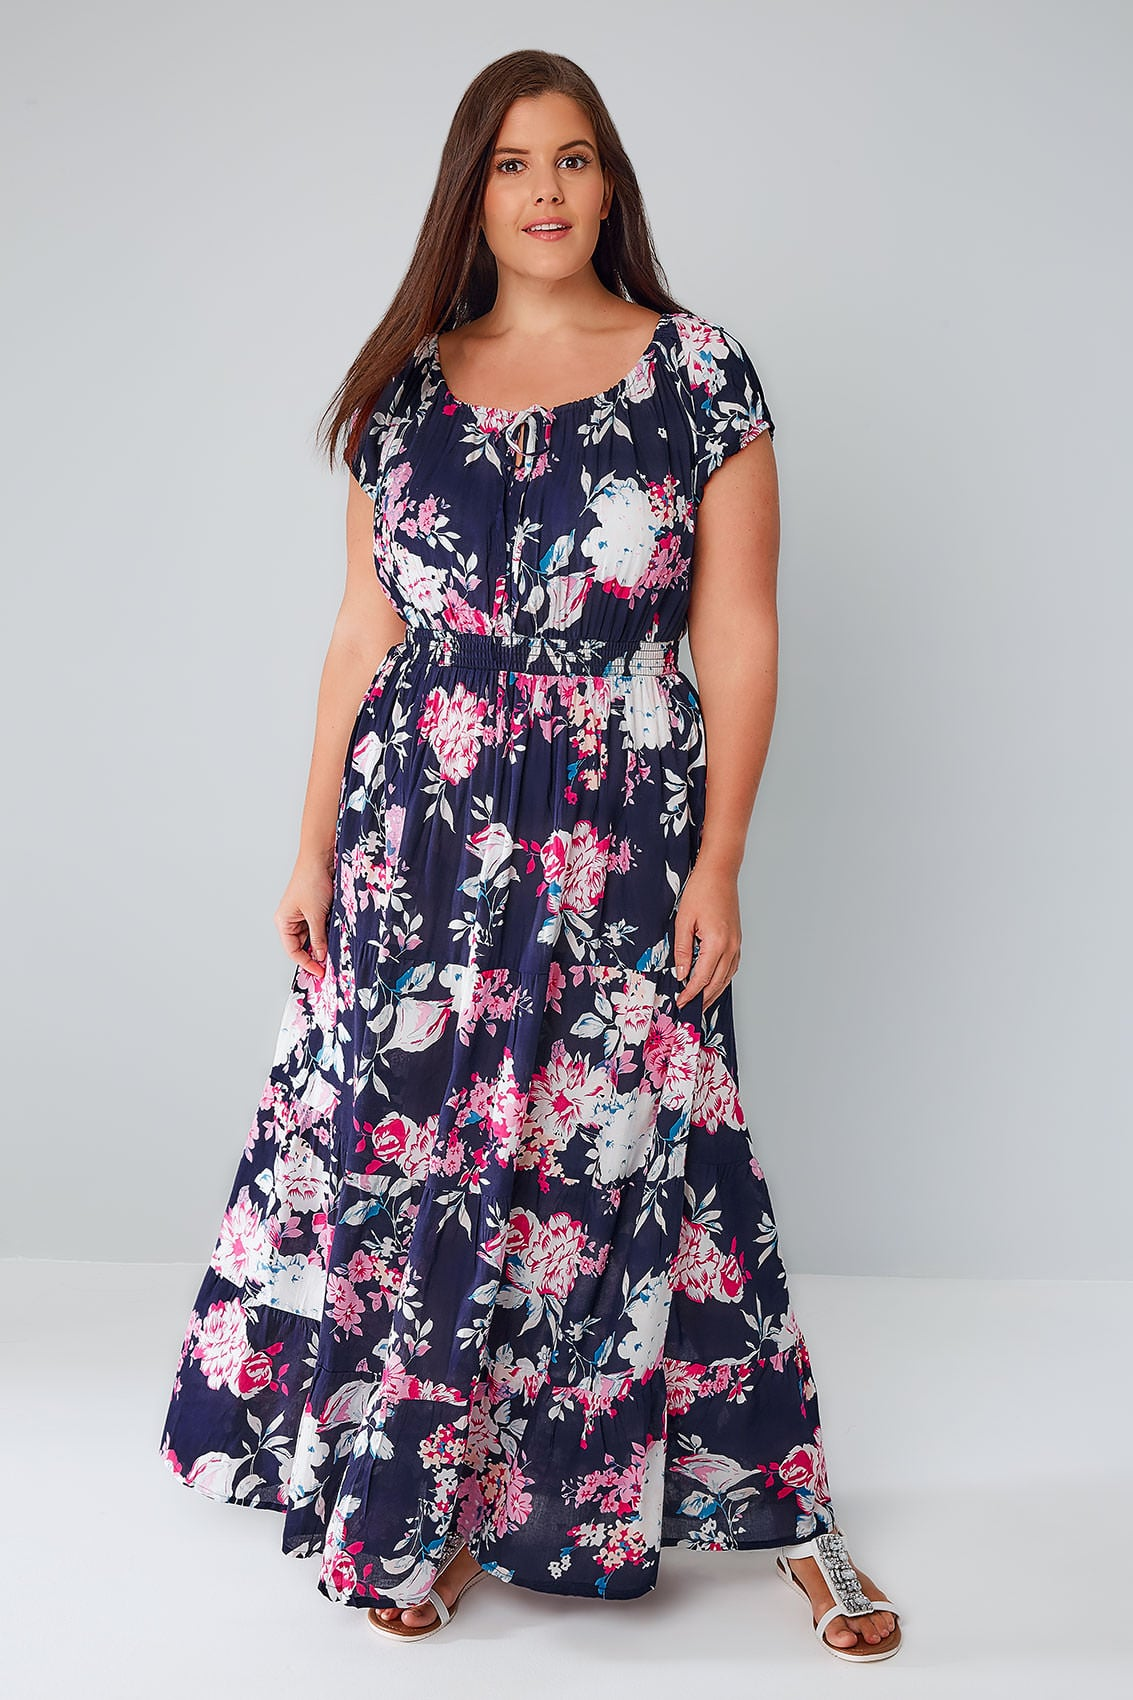 navy & multi floral print sequin gypsy maxi dress, plus size 16 to 36